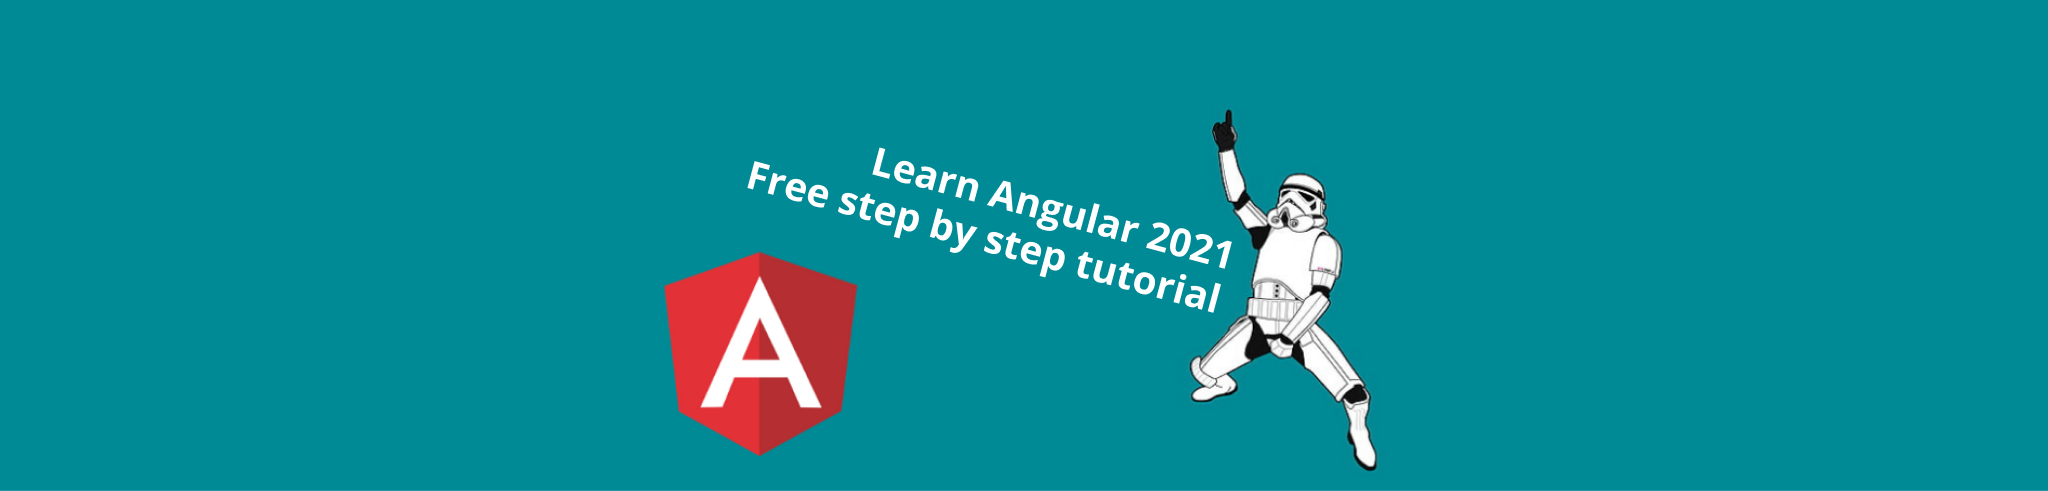 Learn Angular With Free Step By Step Angular Tutorial In 2021